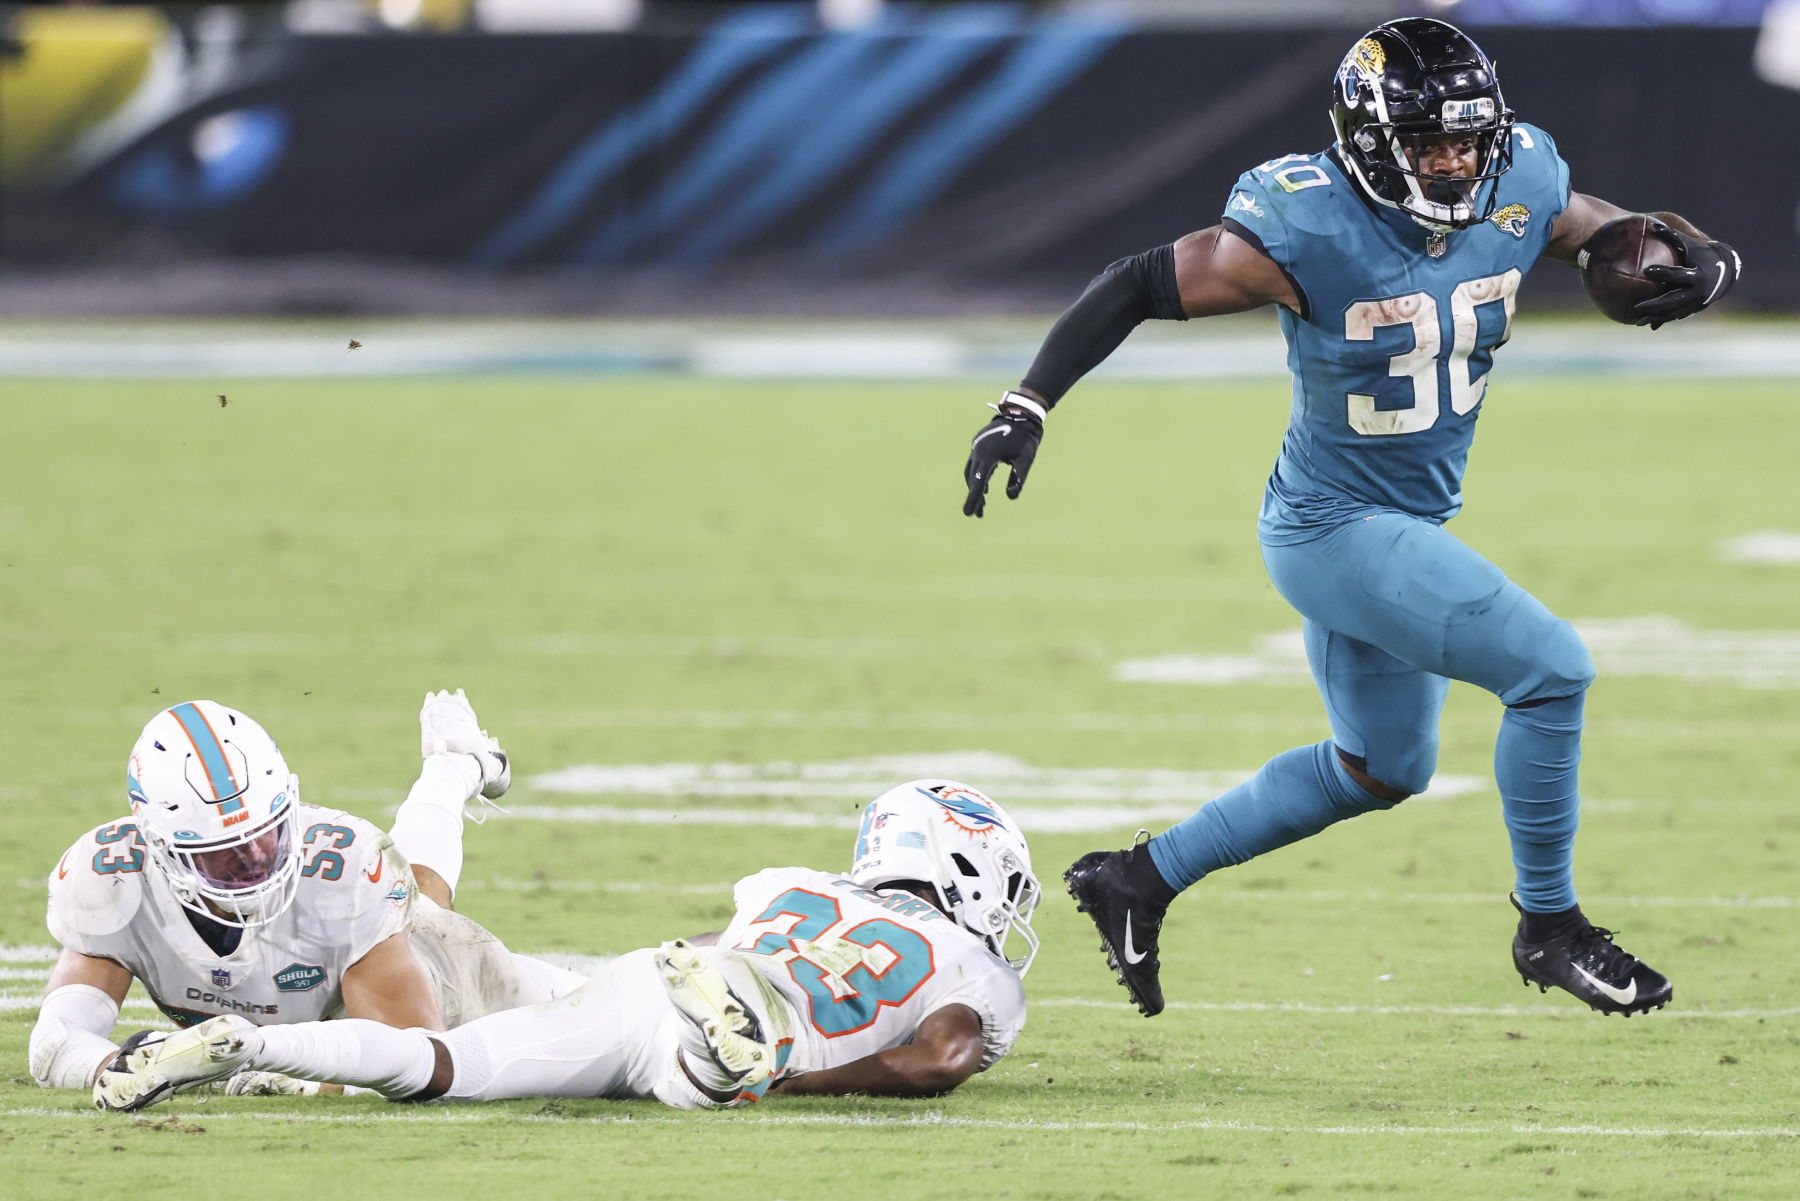 The Jacksonville Jaguars waived running back Leonard Fournette this offseason. However, this has led to James Robinson becoming a star.